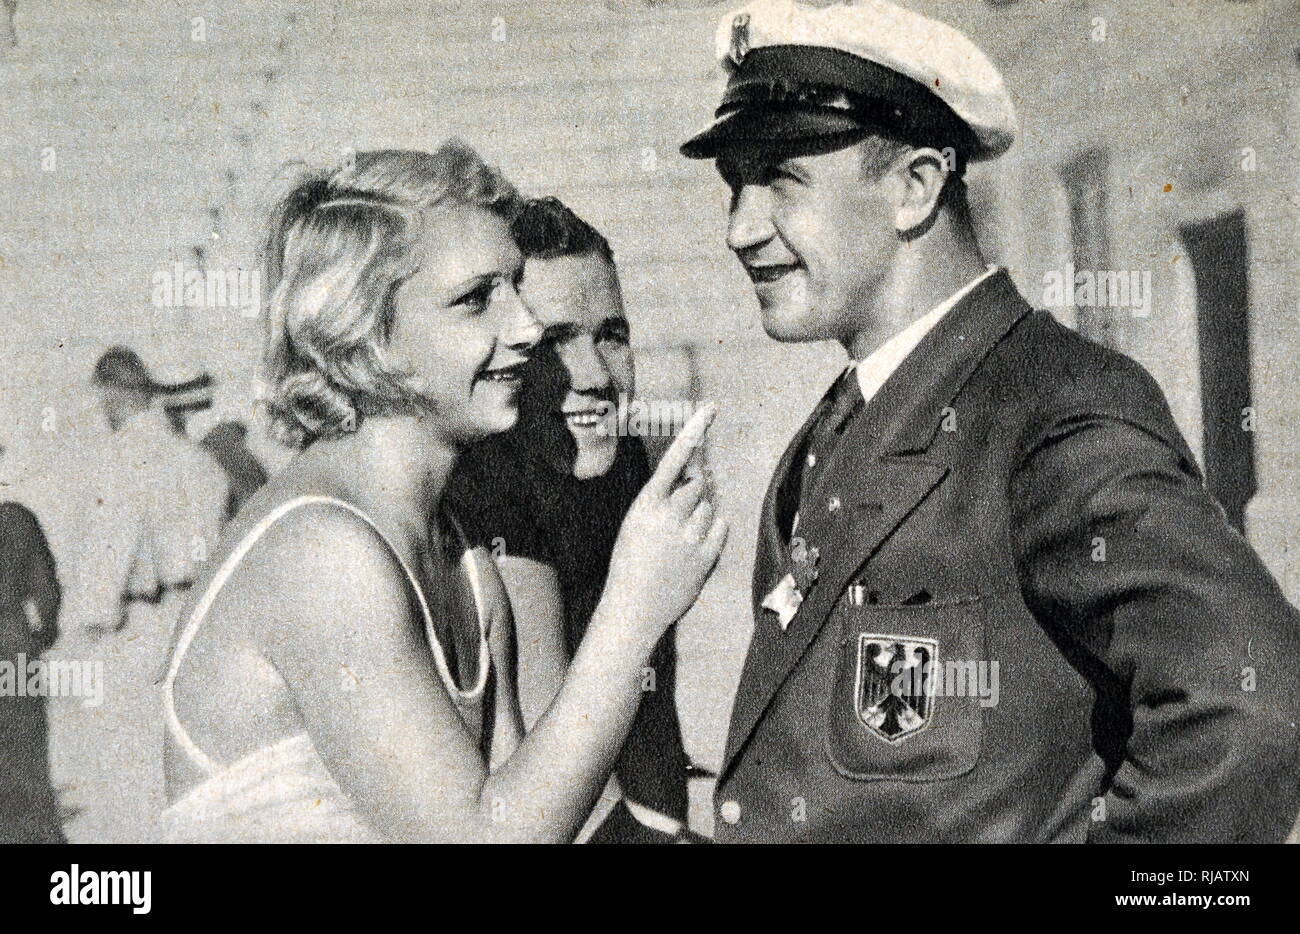 Photograph of Dorothy Poynton-Hill (1915 - 1995) with Germany's Joachim ('Aki') Rademacher (1906 - 1970) at the 1932 Olympic games. - Stock Image